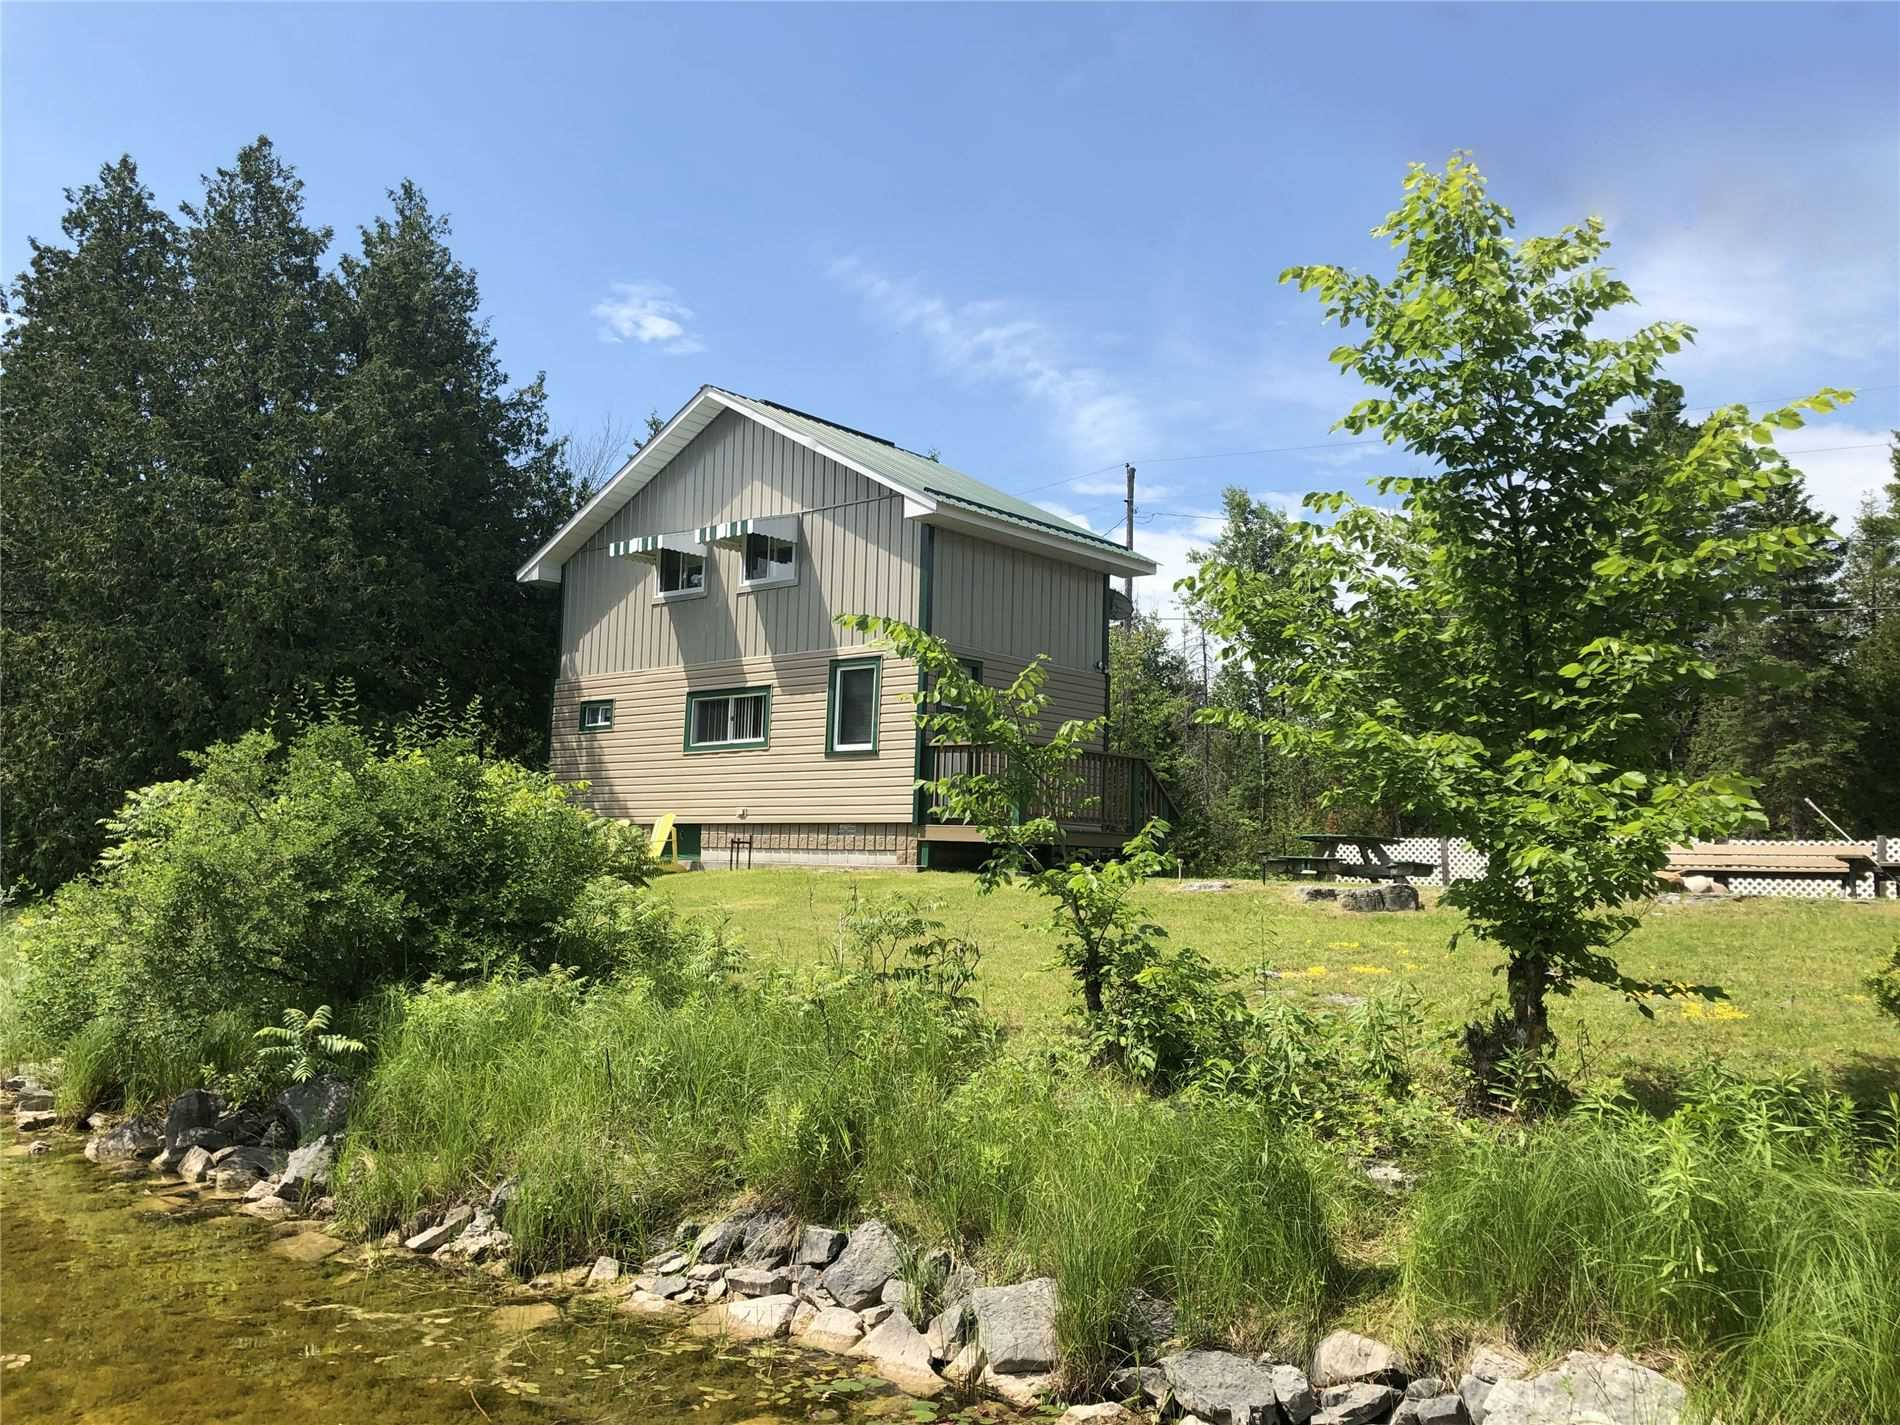 A Little Piece Of Paradise Awaits You At Little Silver Lake! Updated 28.5Ft X 14 Ft Cabin With Loft Sits Quaintly On Approx 1/2 Acre With 500+ Ft Of Shoreline. 15 Minutes To Bobcaygeon. Cabin Completely Renovated In 2008 (Down To Studs, Re-Insulated Including Under Floor). Free Standing Air Conditioning. Metal Roof, Windows 10 Years New. New Door/Awning 2018. Lake Stocked This Spring W/800 Trout. 16Ft Dock Redone W/Textar Plastic Floats And Fold Up Ladder.